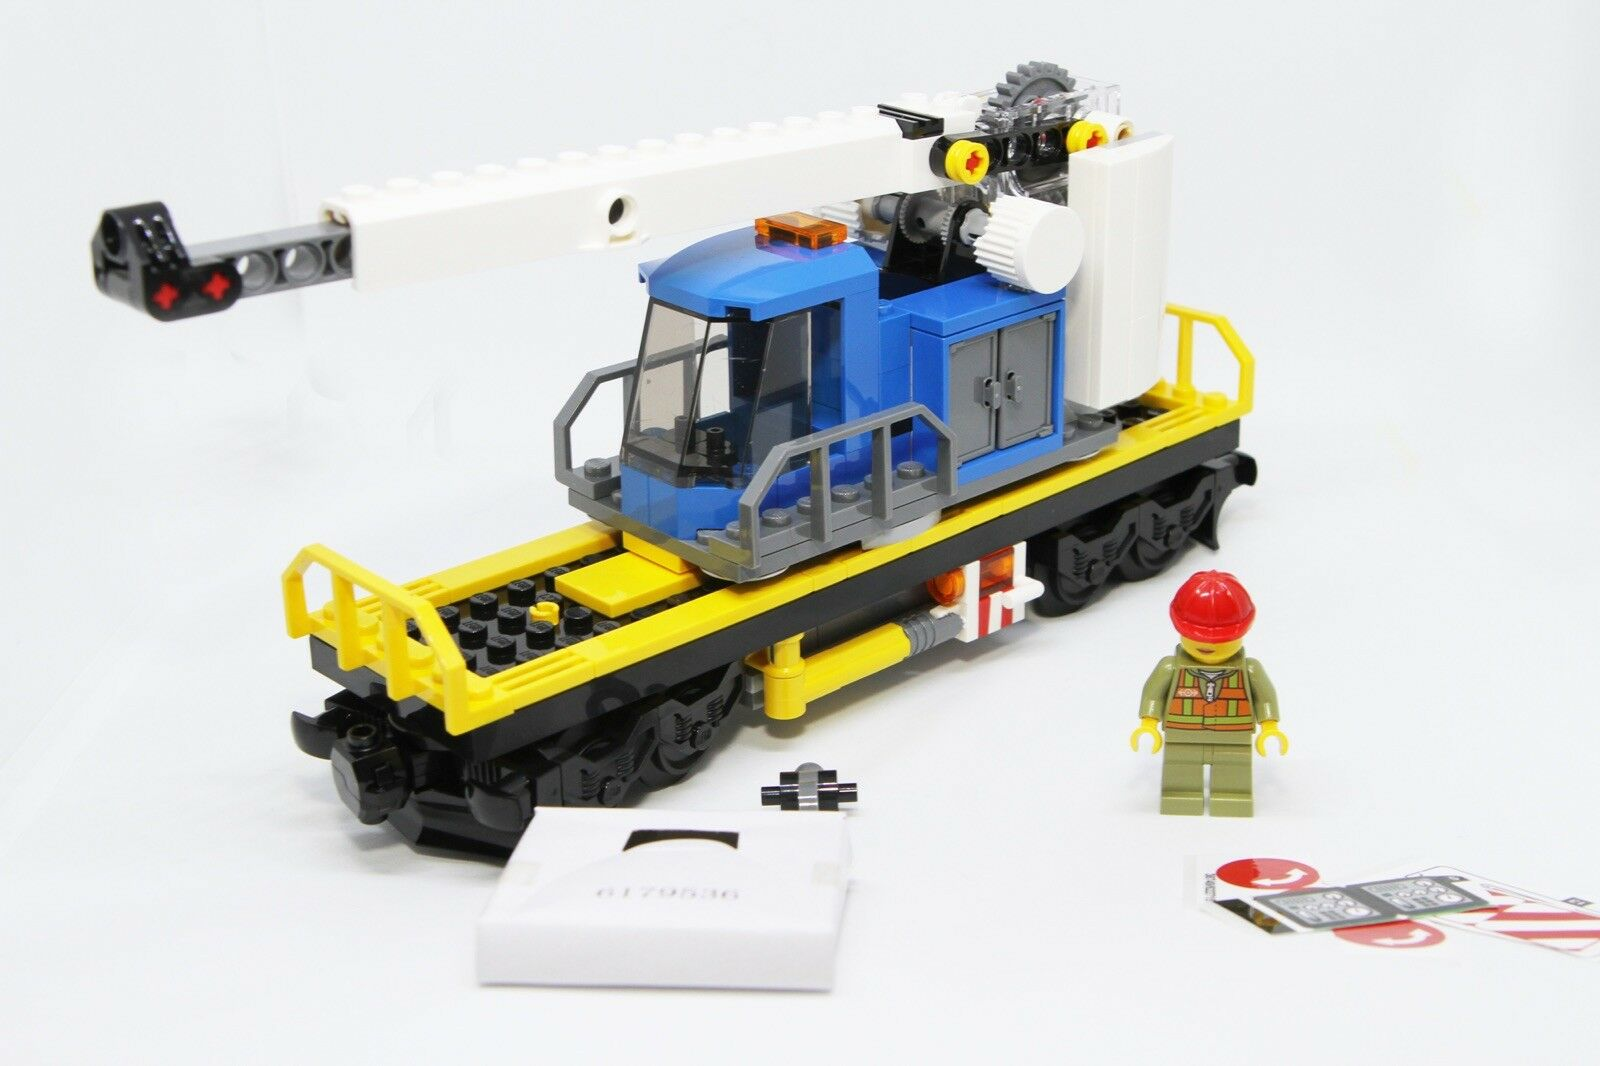 Lego City Cargo Train 60198 GRUE WAGON Transport Seulement-Pas sous tension inclus